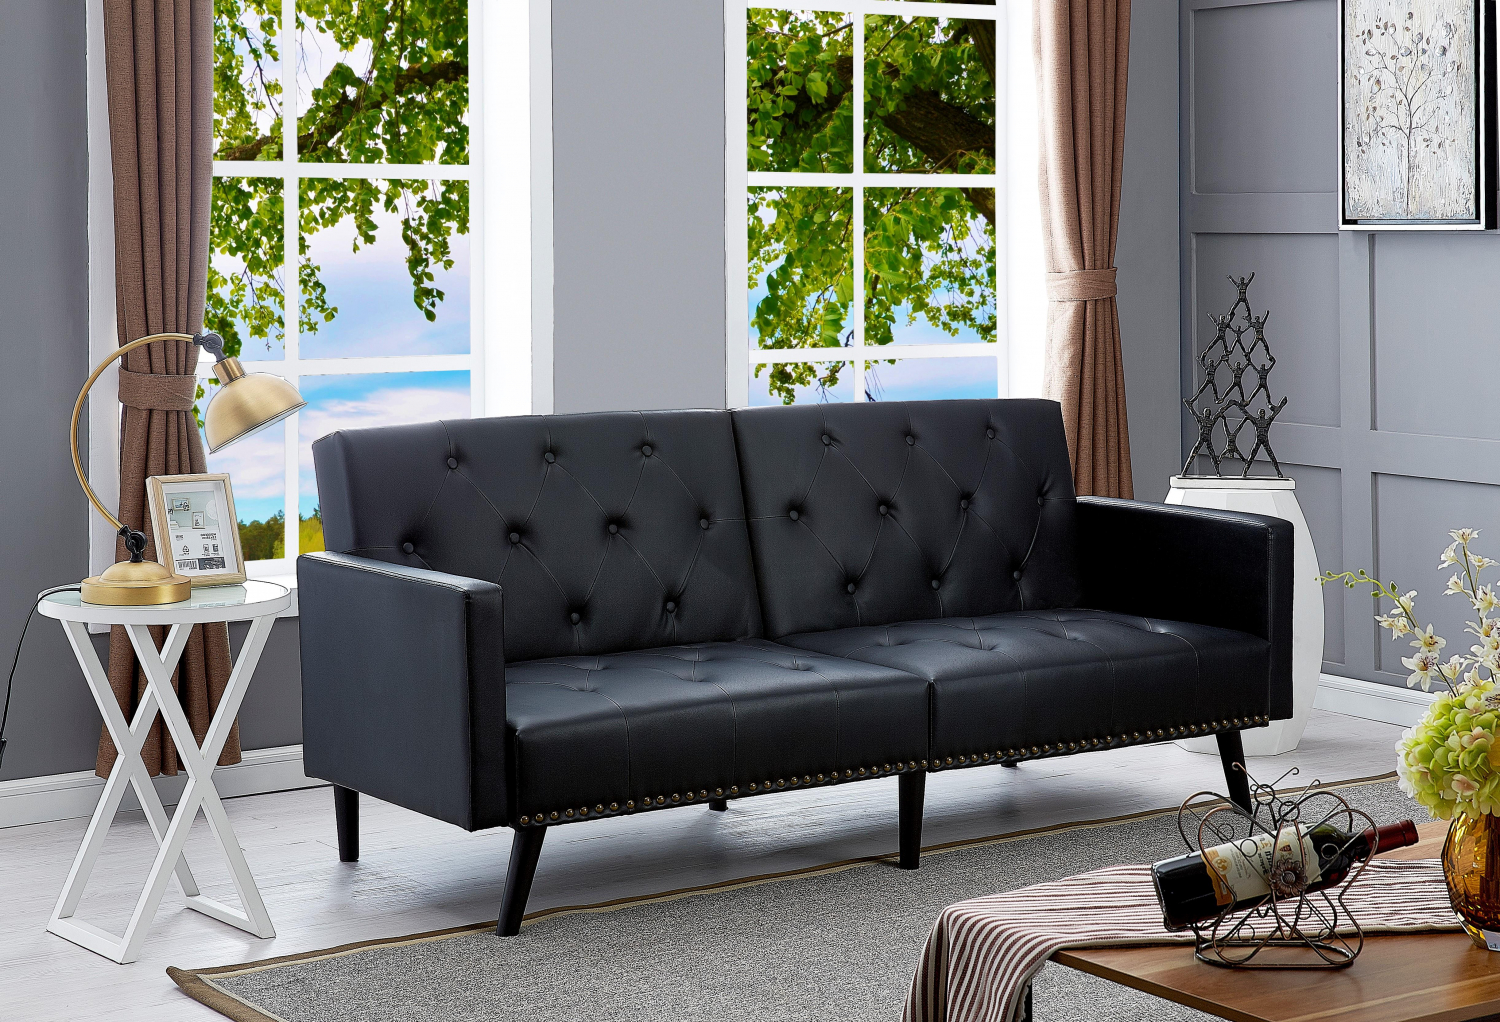 Details about Leather Futon Sofa Bed Sleeper Couch Convertible Loveseat  Tufted Black Reclining